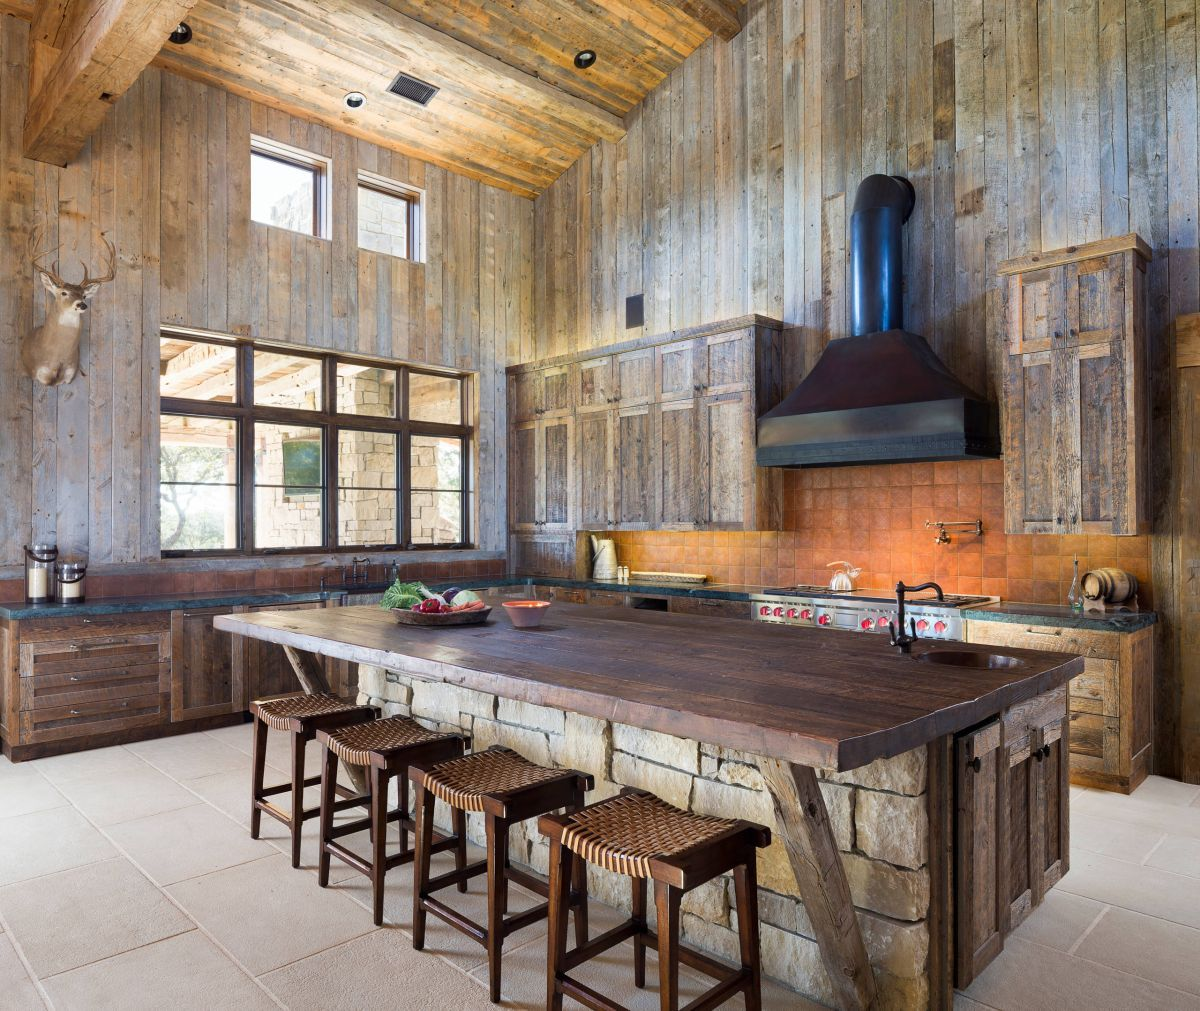 Rustic Kitchen Island Rustic Kitchen Design Rustic Kitchen Island Rustic Kitchen